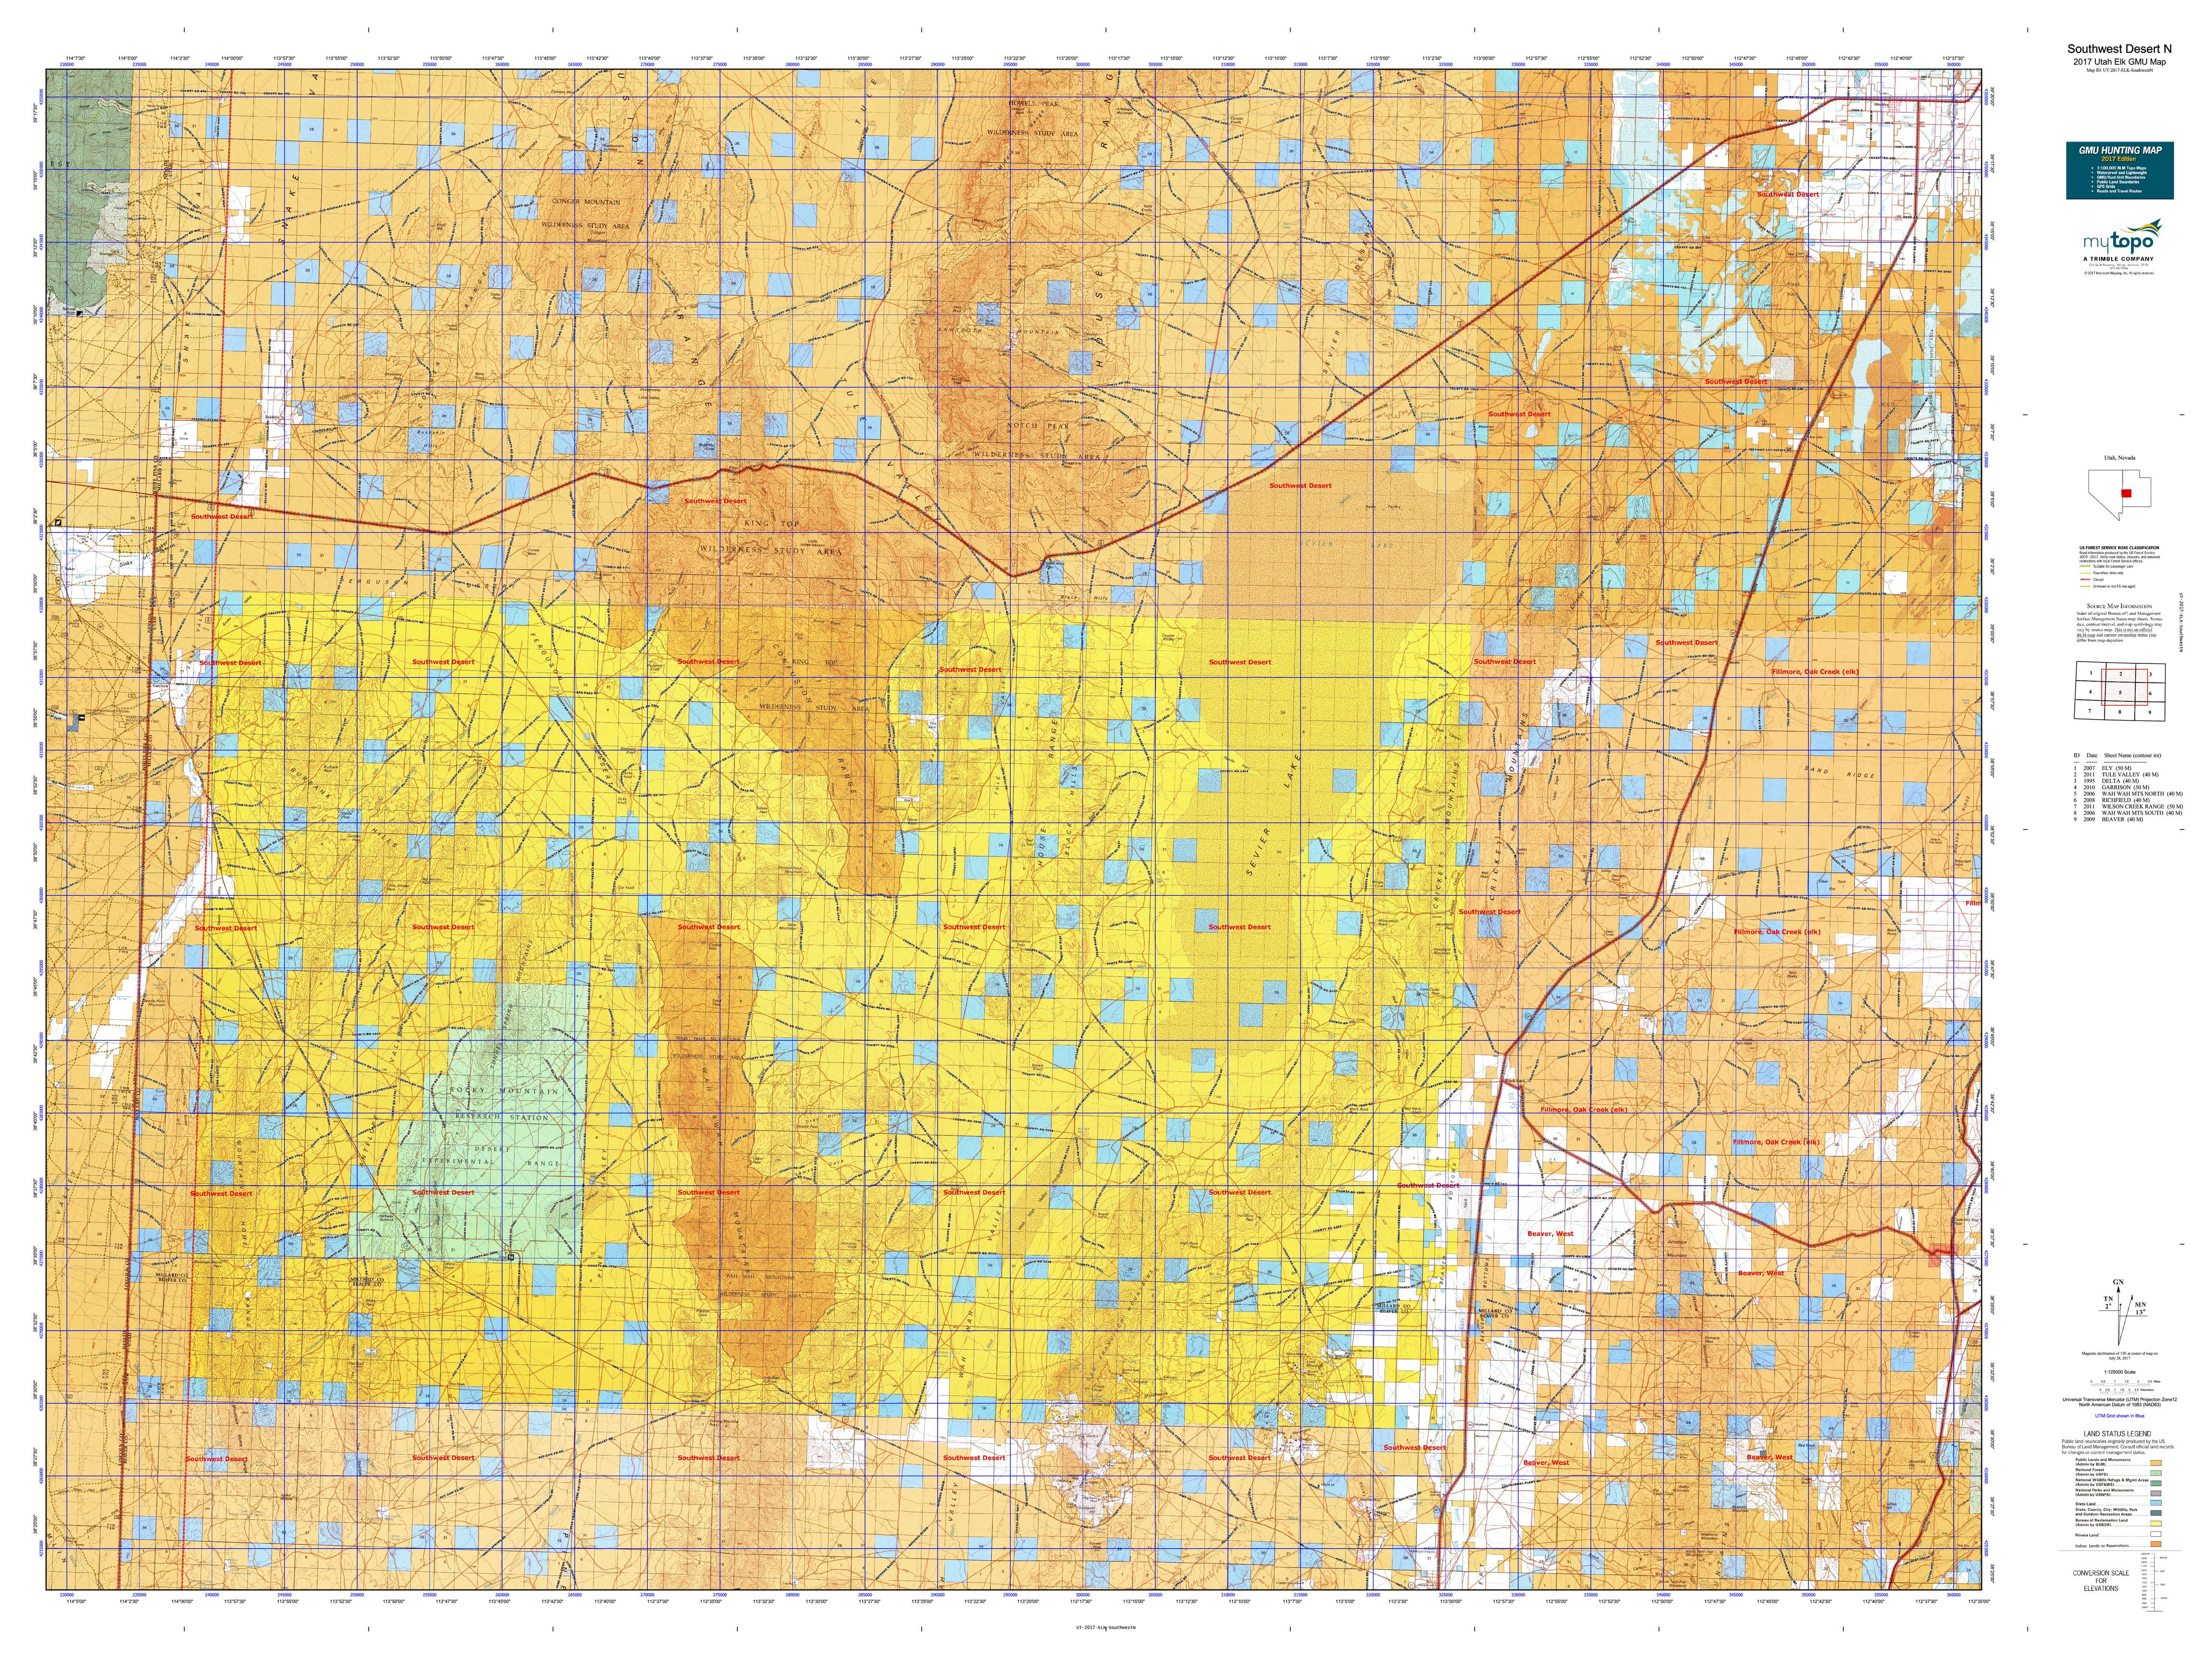 Southwest Desert S Map MyTopo - Map of south west us